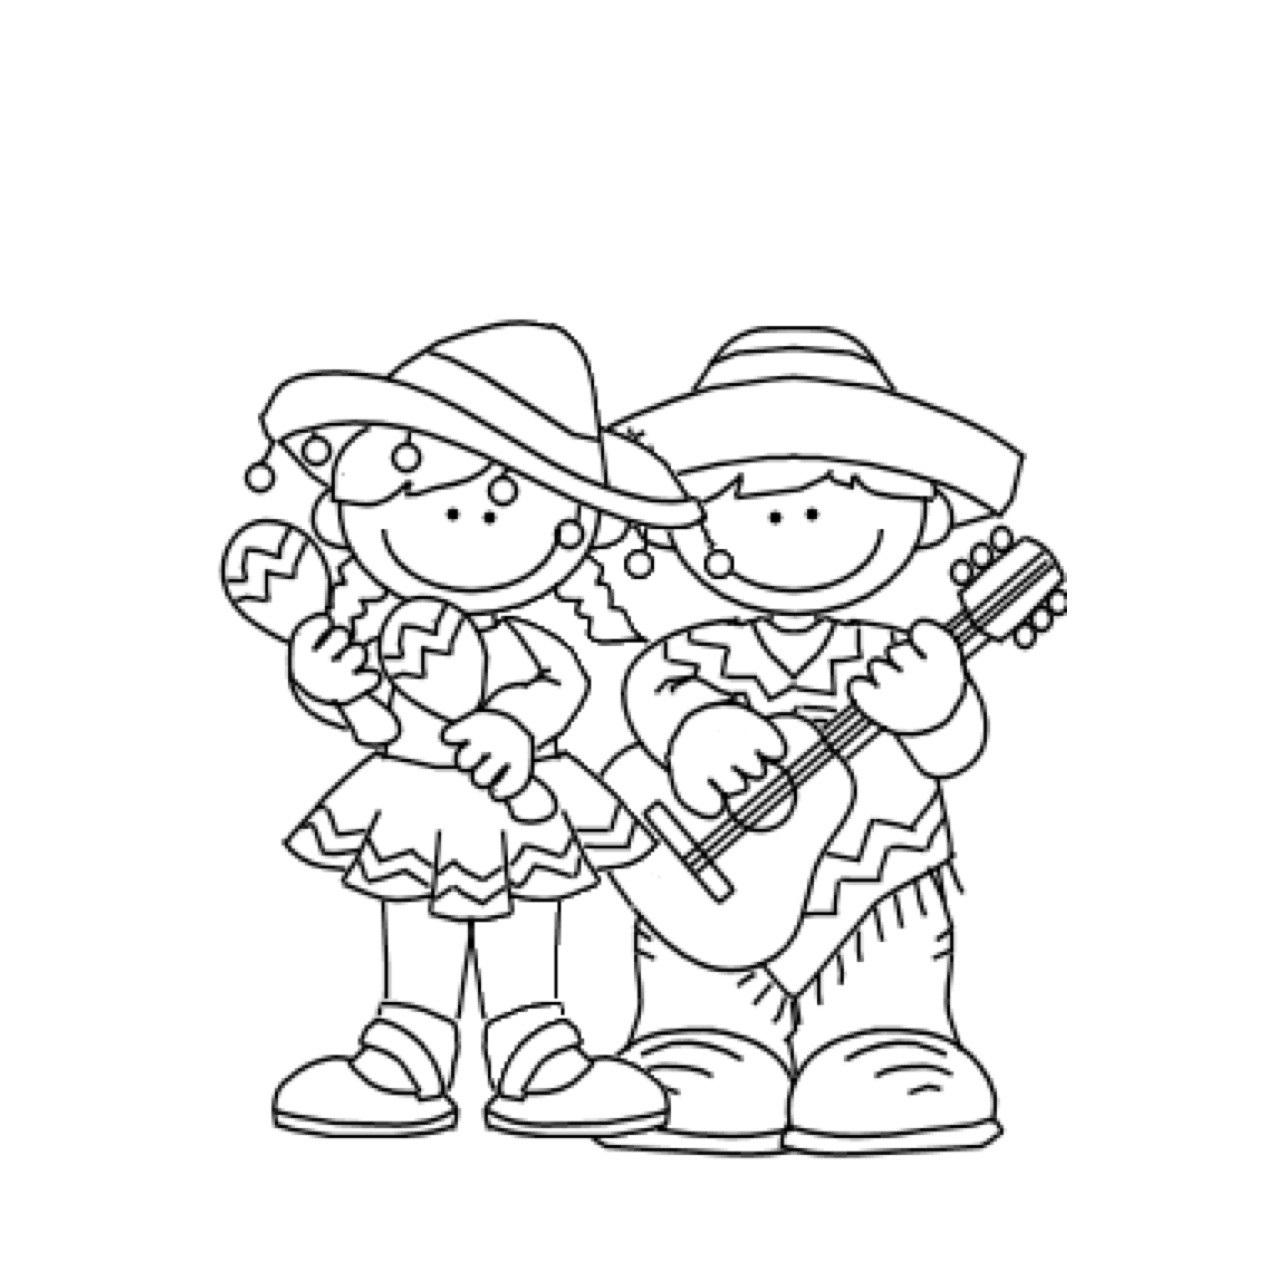 Cinco de Mayo Coloring Pages - English ESL Worksheets for distance ... | 1287x1275